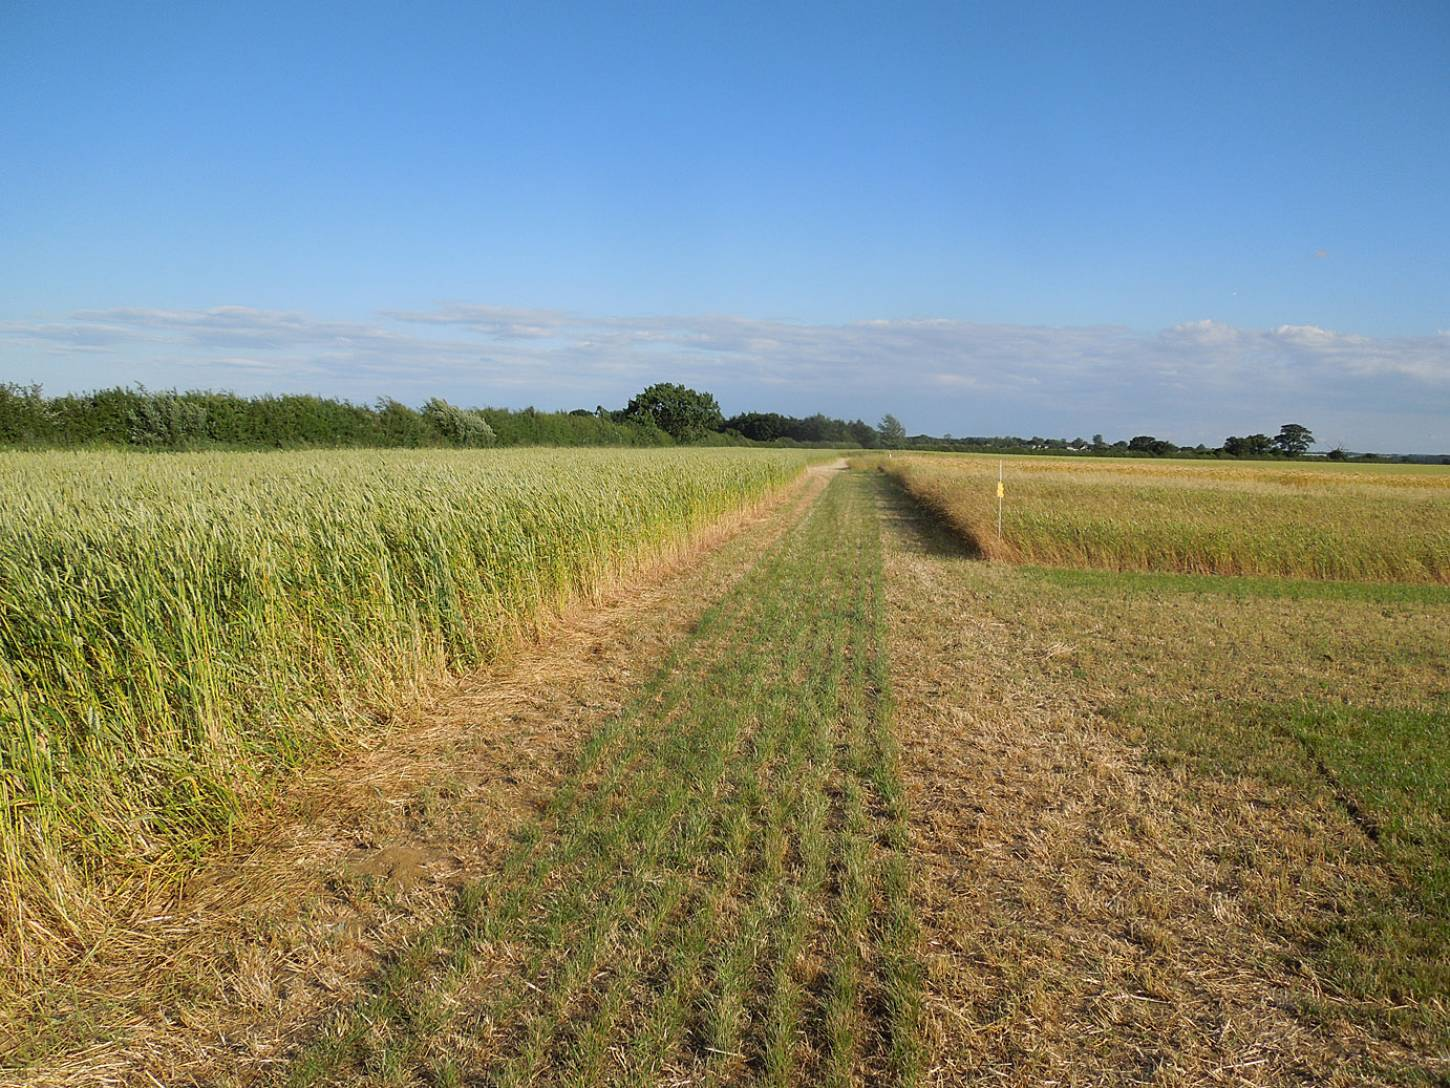 trials at <a href='https://twitter.com/search?src=typd&q=NOCC15' target=_blank>NOCC15</a> - good stand of Wakleyns wheat population to left, other lines to right  - 6:25pm&nbsp;7<sup>th</sup>&nbsp;Jul.&nbsp;'15